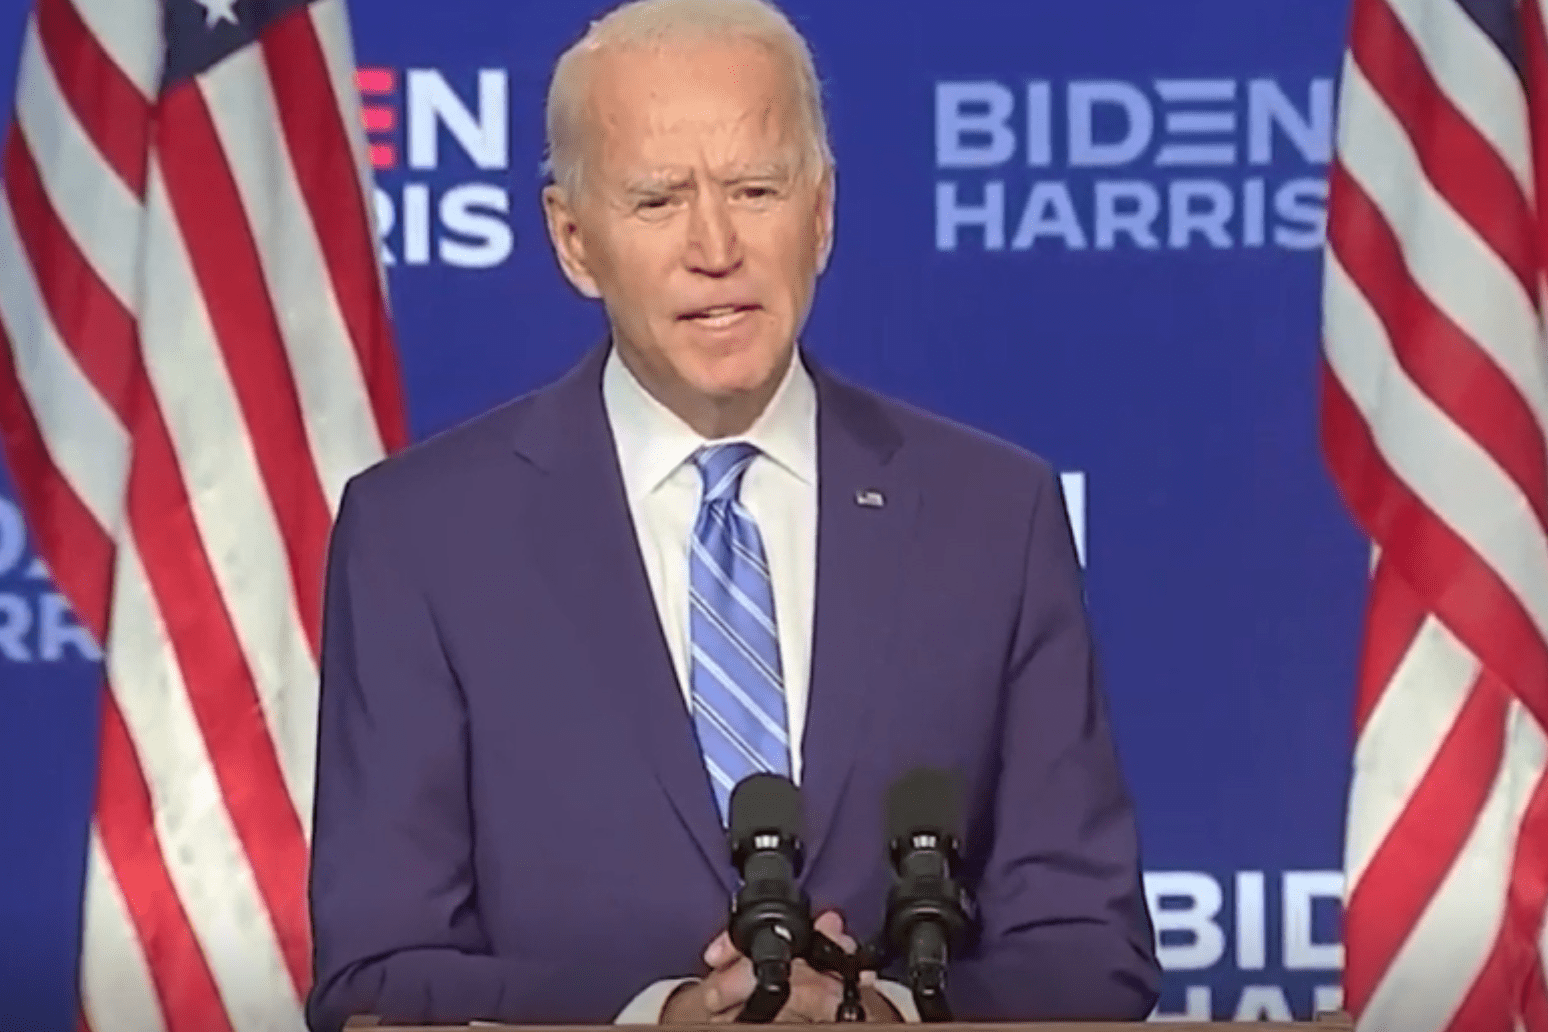 US agency declares Biden 'apparent winner' – clearing way for transition